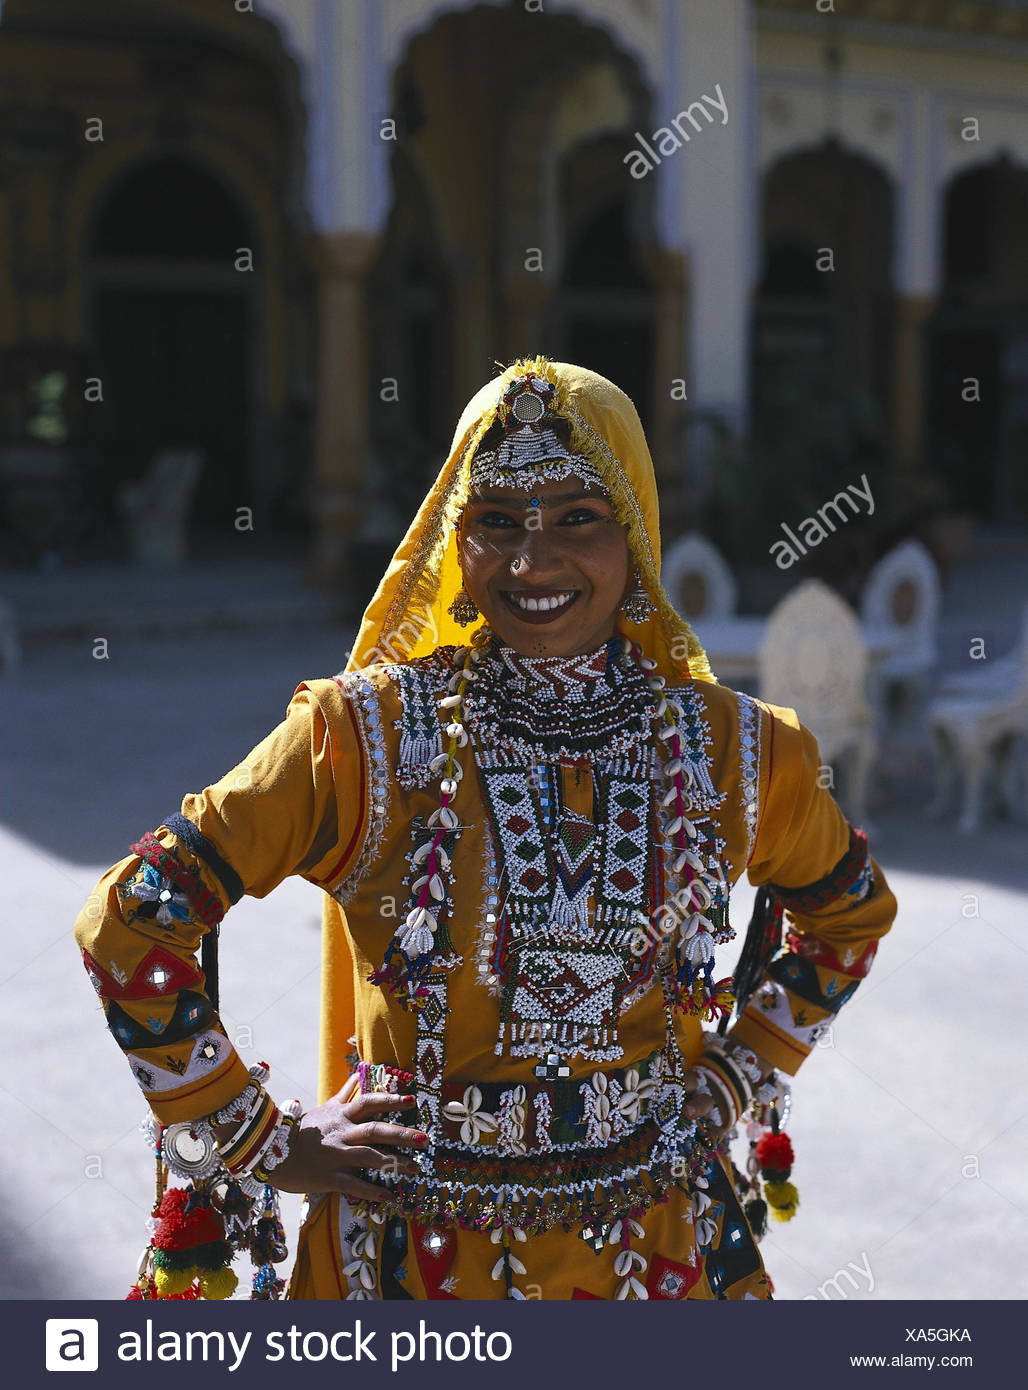 0bb394b1f6 India, Rajasthan, Jaipur, Indian, national costume, half portrait woman,  young, clothes, traditionally, national costume, jewellery, outside